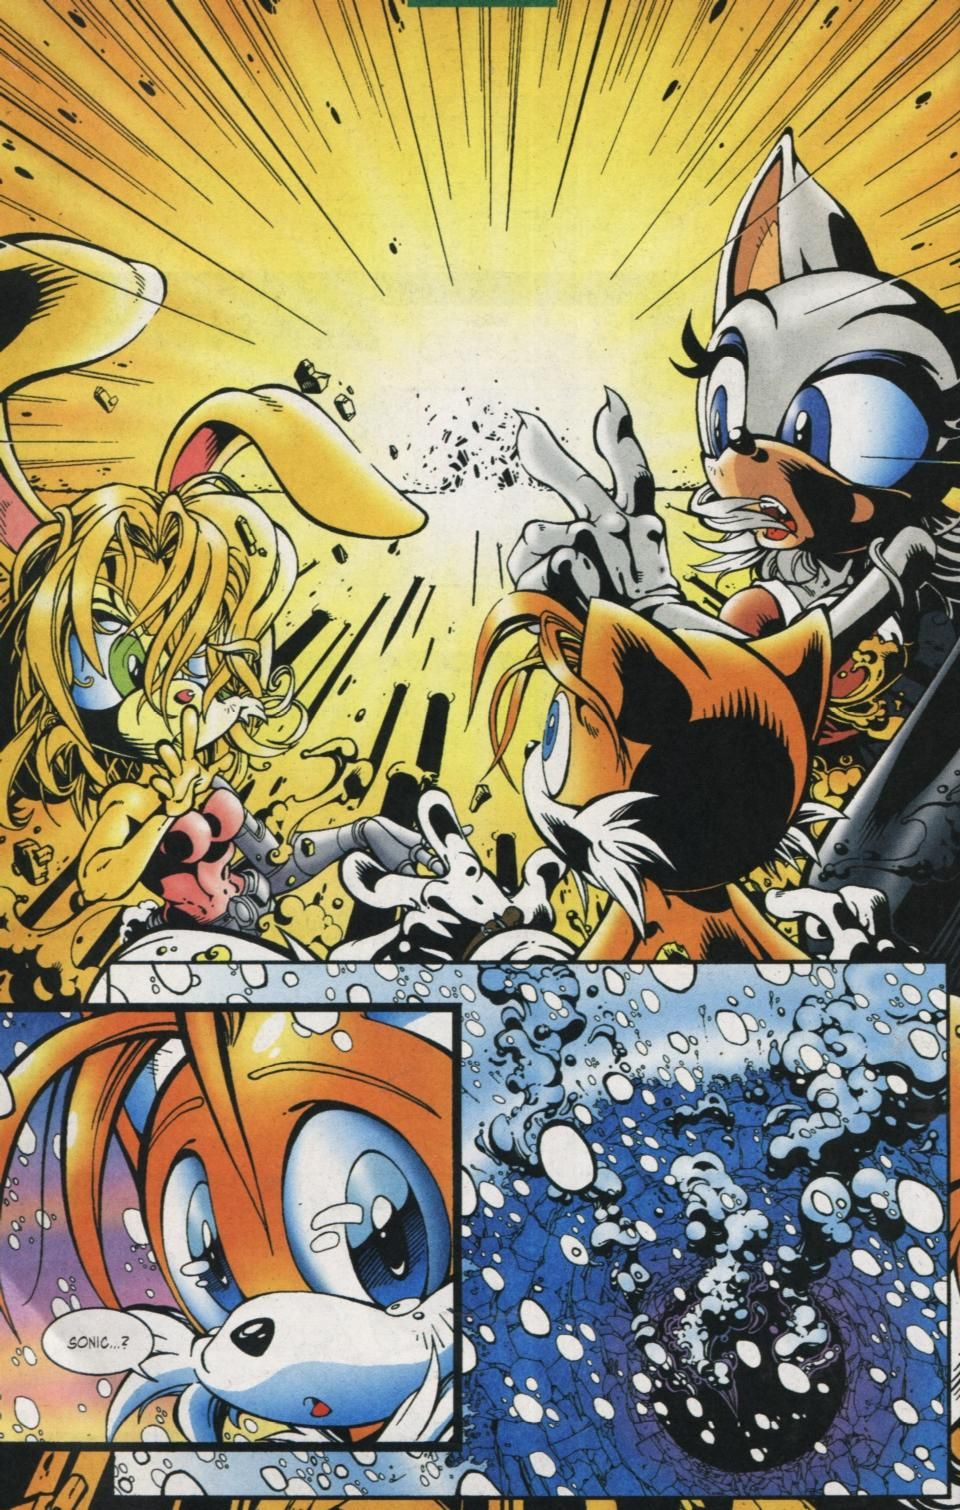 How Sonic The Hedgehog Died On Issue 125 3 Sonic The Hedgehog Sonic Hedgehog